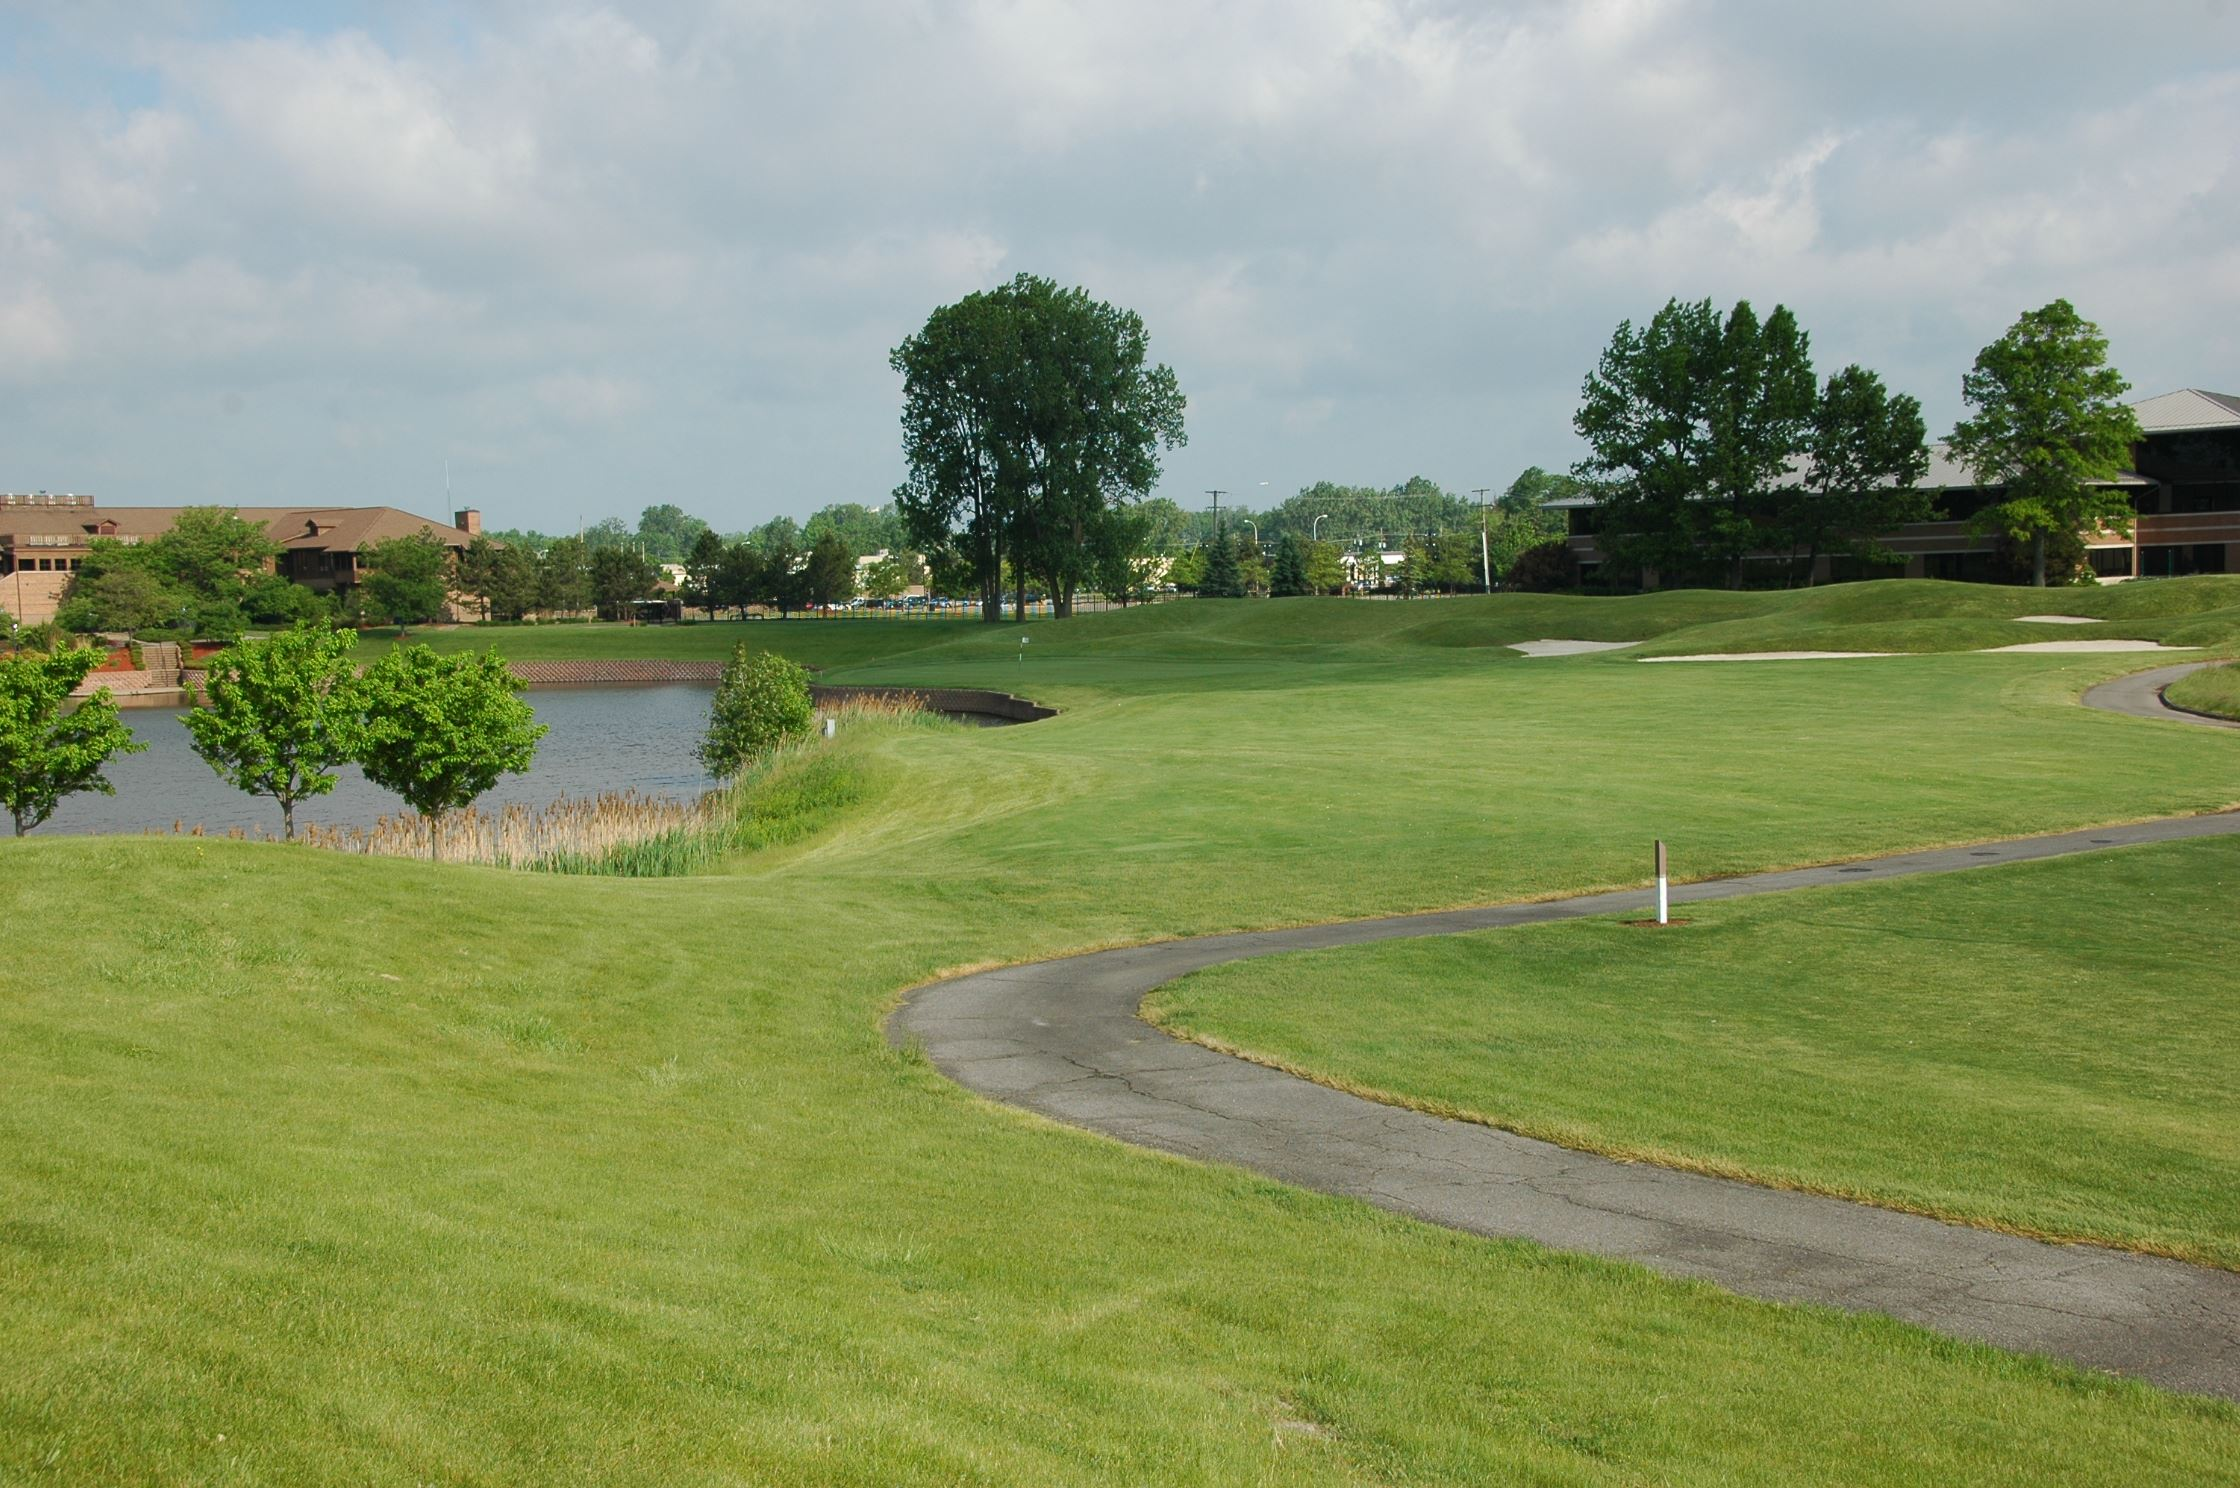 The beautiful scenery of the Lakes of Taylor Golf Course.